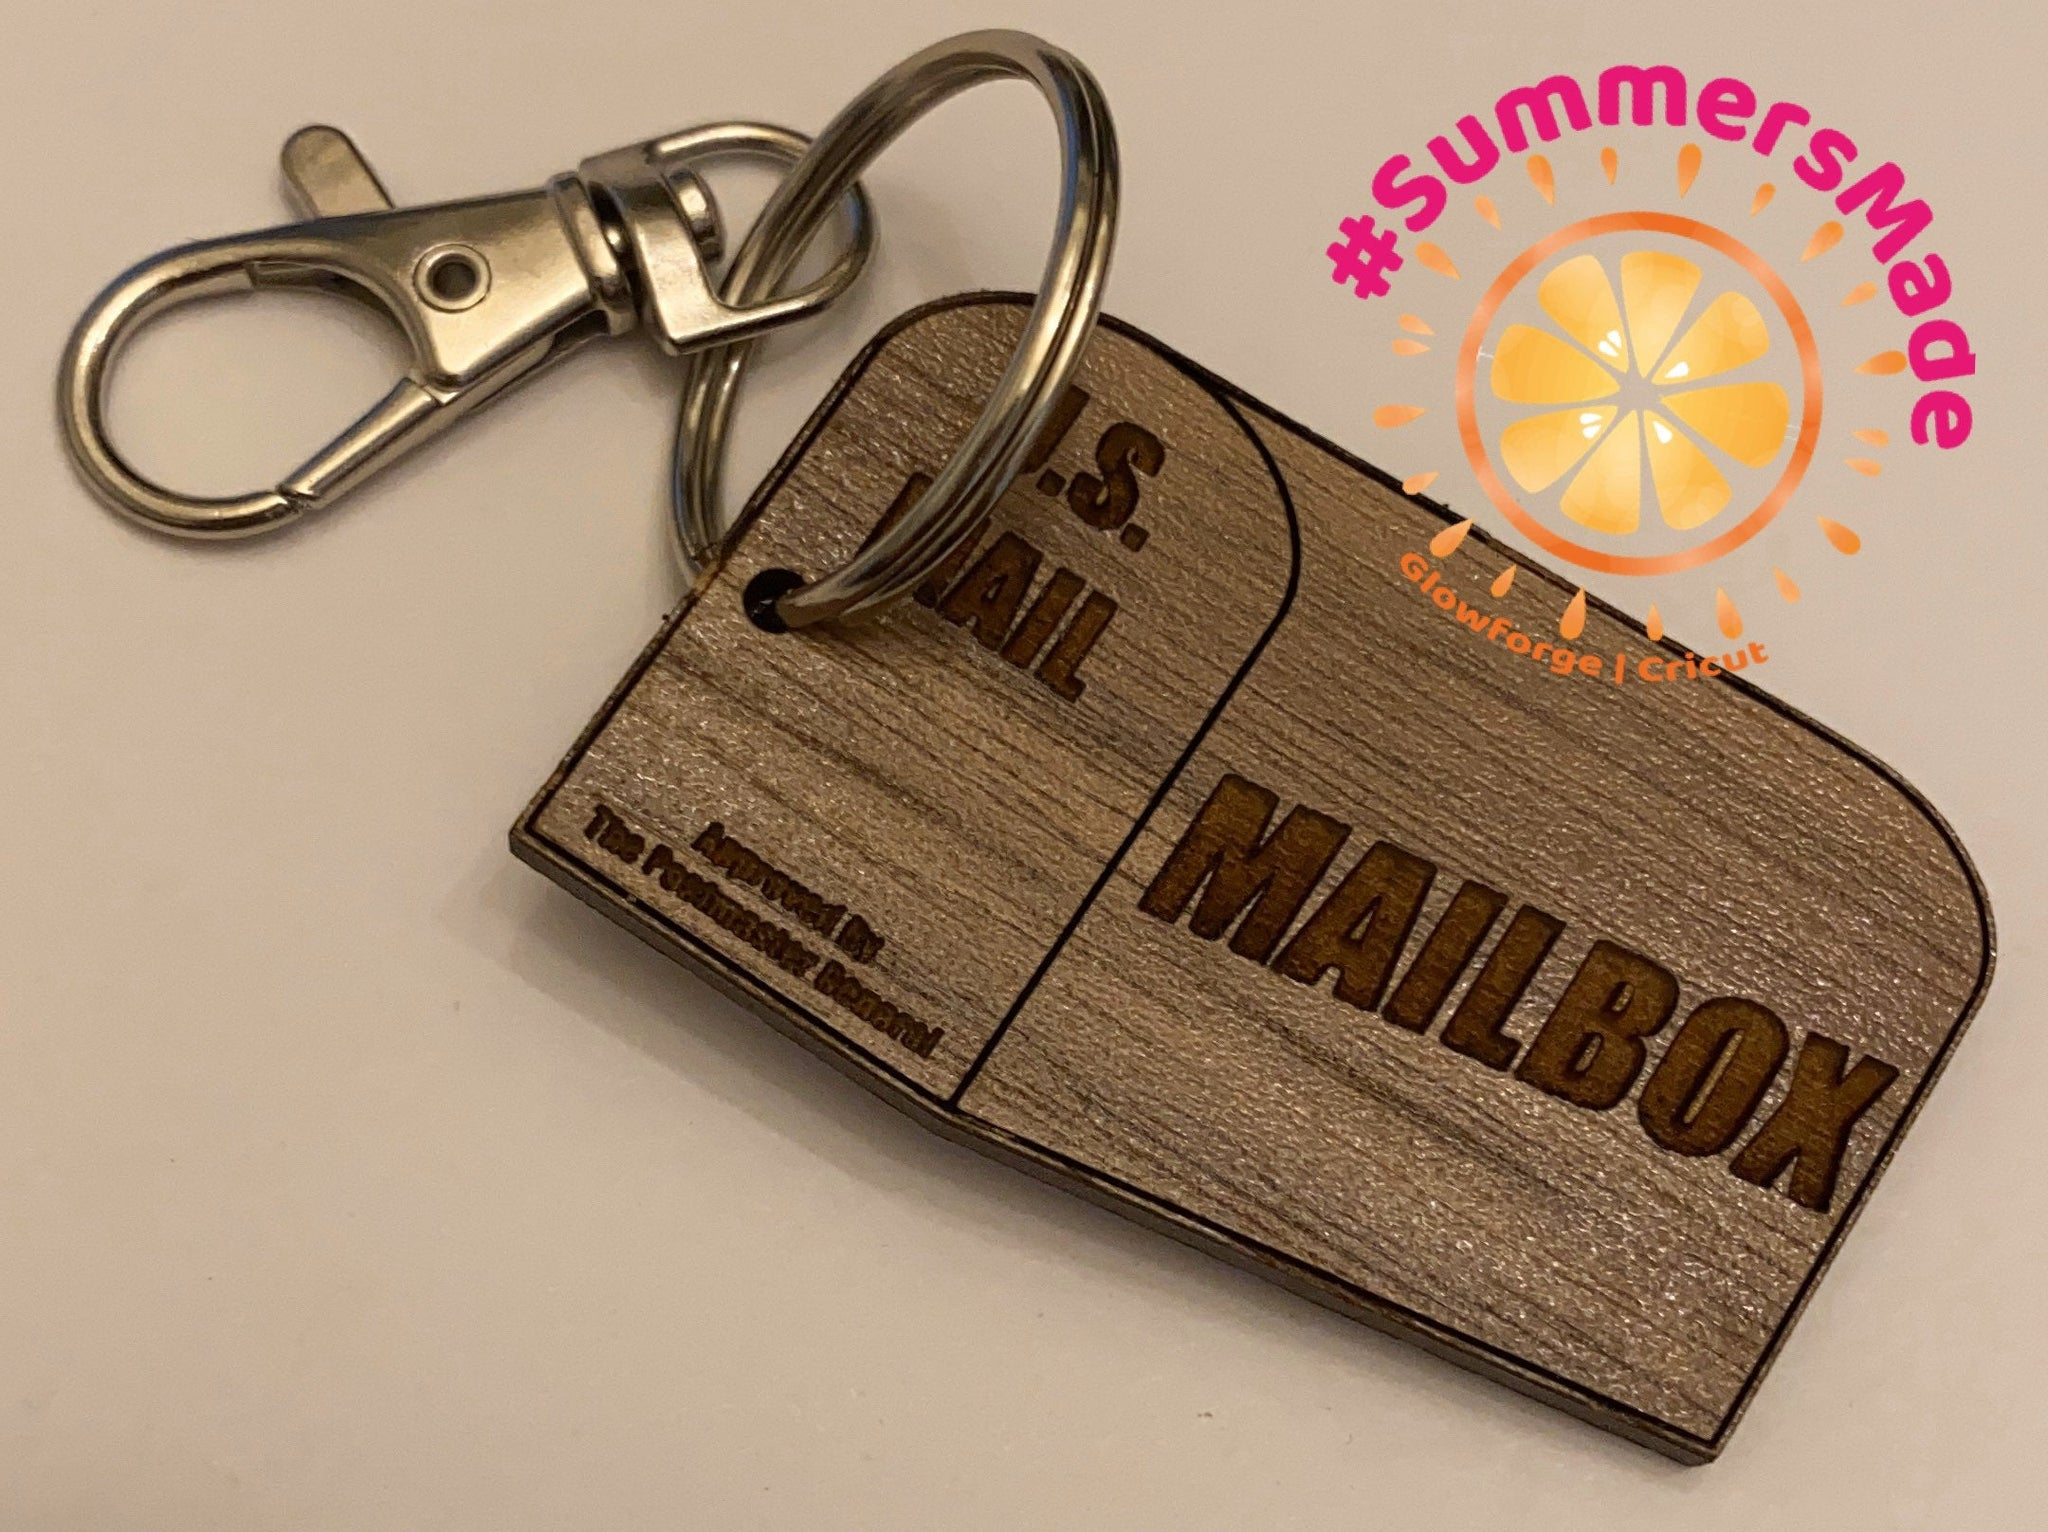 Mailbox Keychain - Key fob, Keyring, keychain - Never lose your Mail box key again